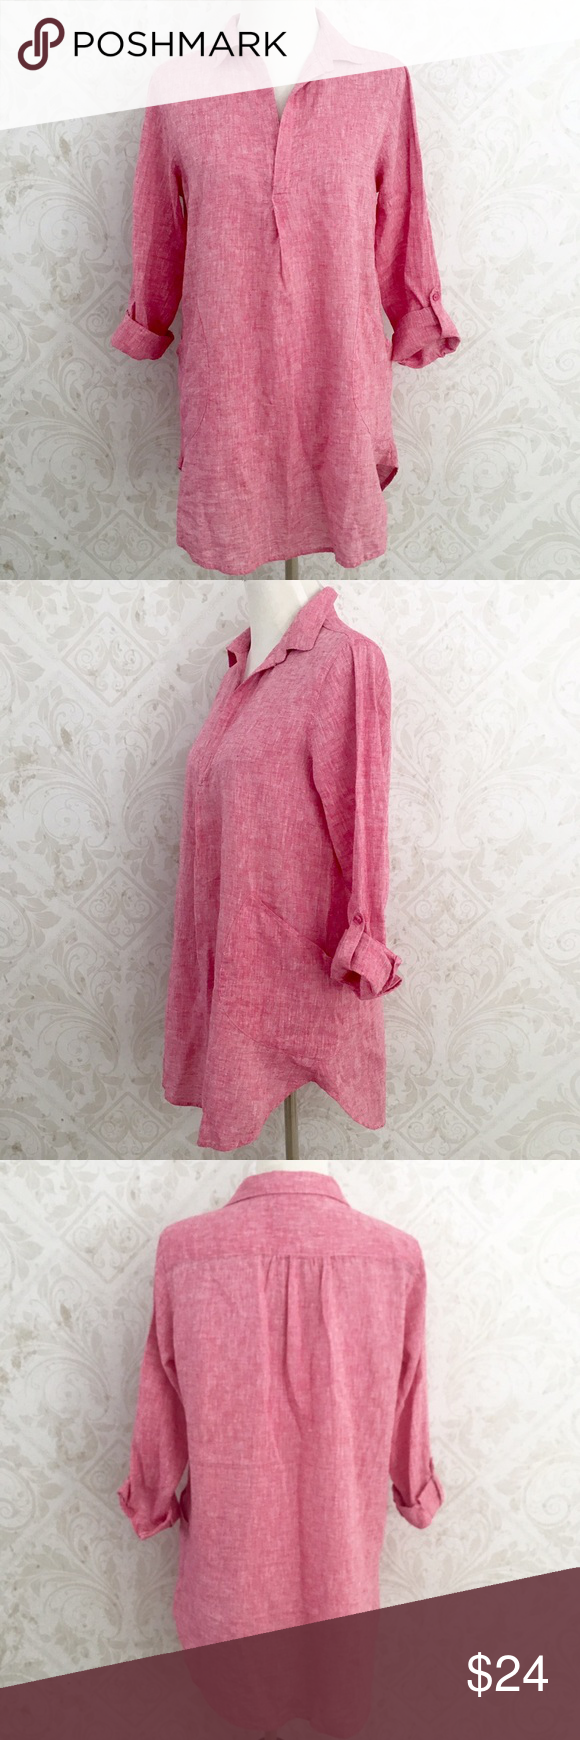 5c91b9e572 Marled red   white linen Forcynthia tunic The perfect summer tunic! Red and white  marled heathered linen fabric. Long sleeves with roll-up tabs.